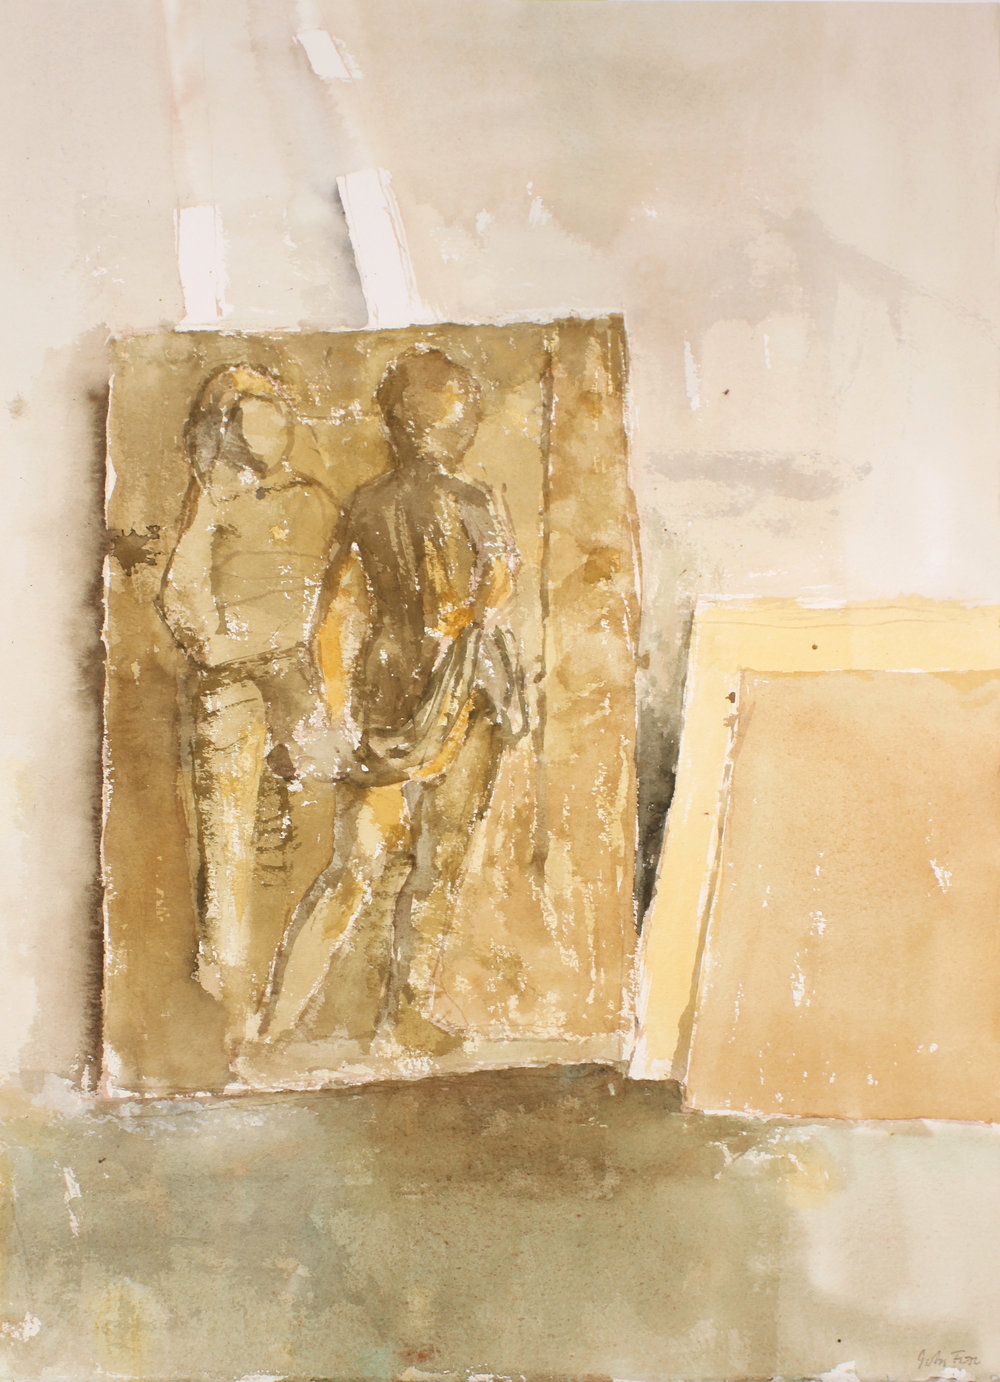 1990s_Relief_Sculpture_in_Studio_watercolour_on_paper_20x15in_WPF648.jpg